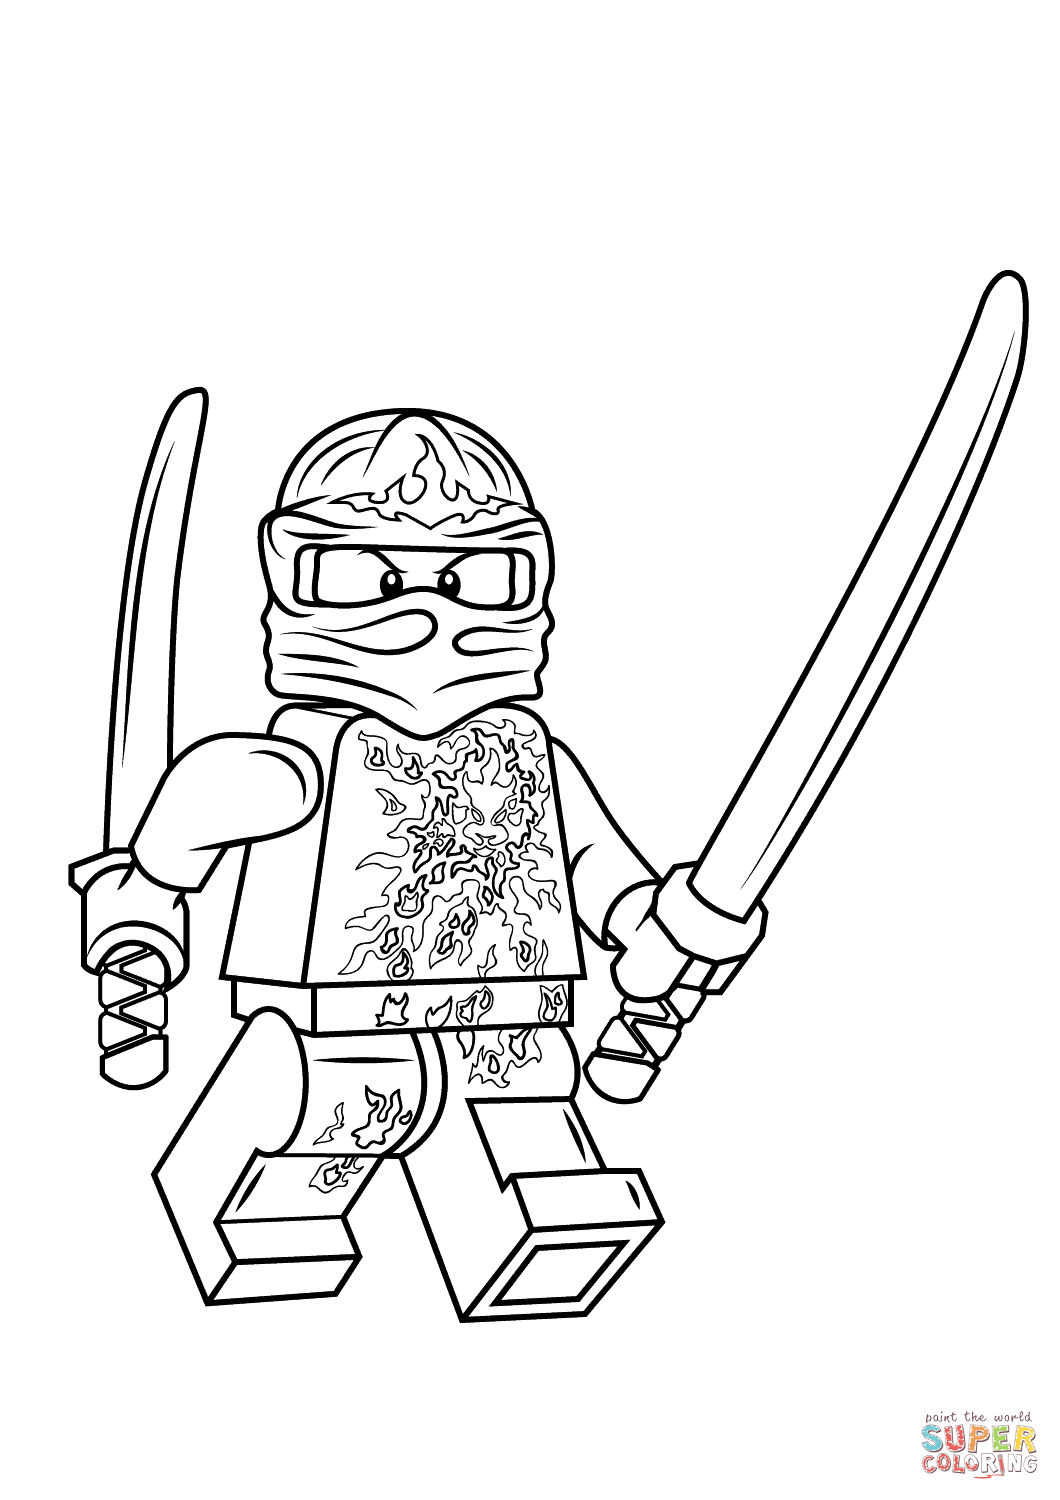 Lego Ninjago Kai Nrg Coloring Page Free Printable Coloring Pages Ninjago Coloring Pages Super Coloring Pages Lego Coloring Pages